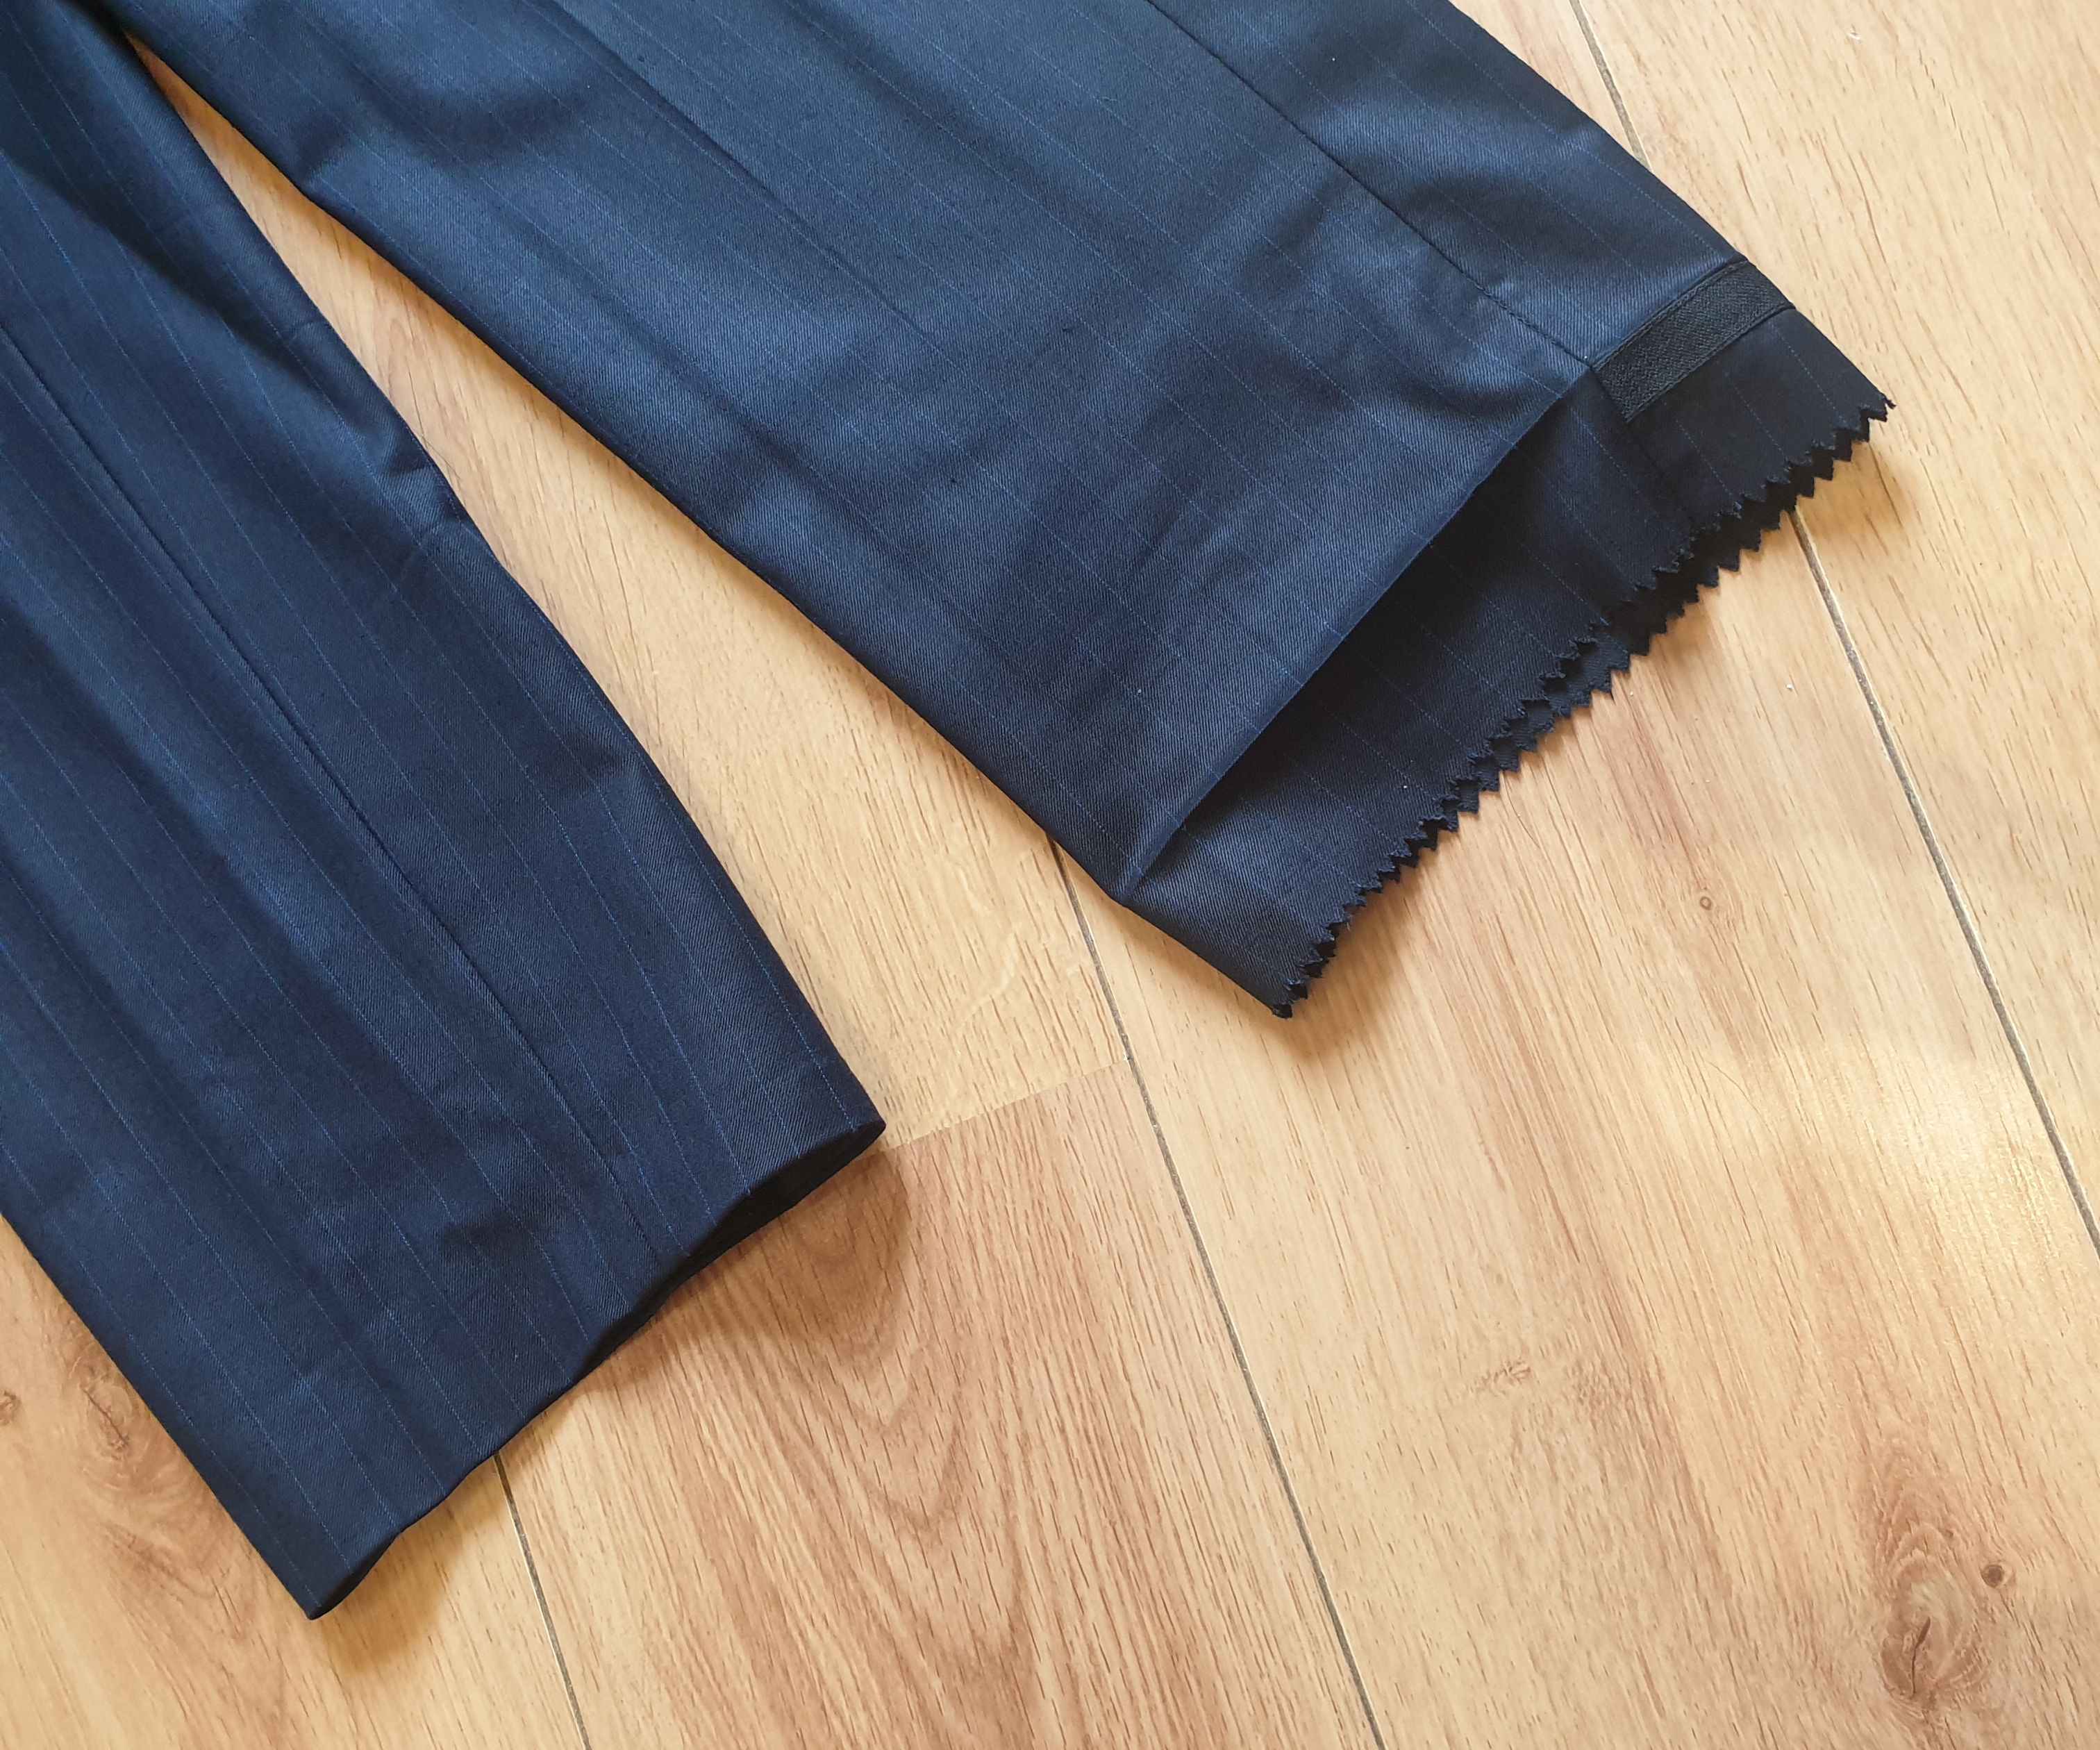 How to Use Hemming Tape (Wonderweb) on Trousers